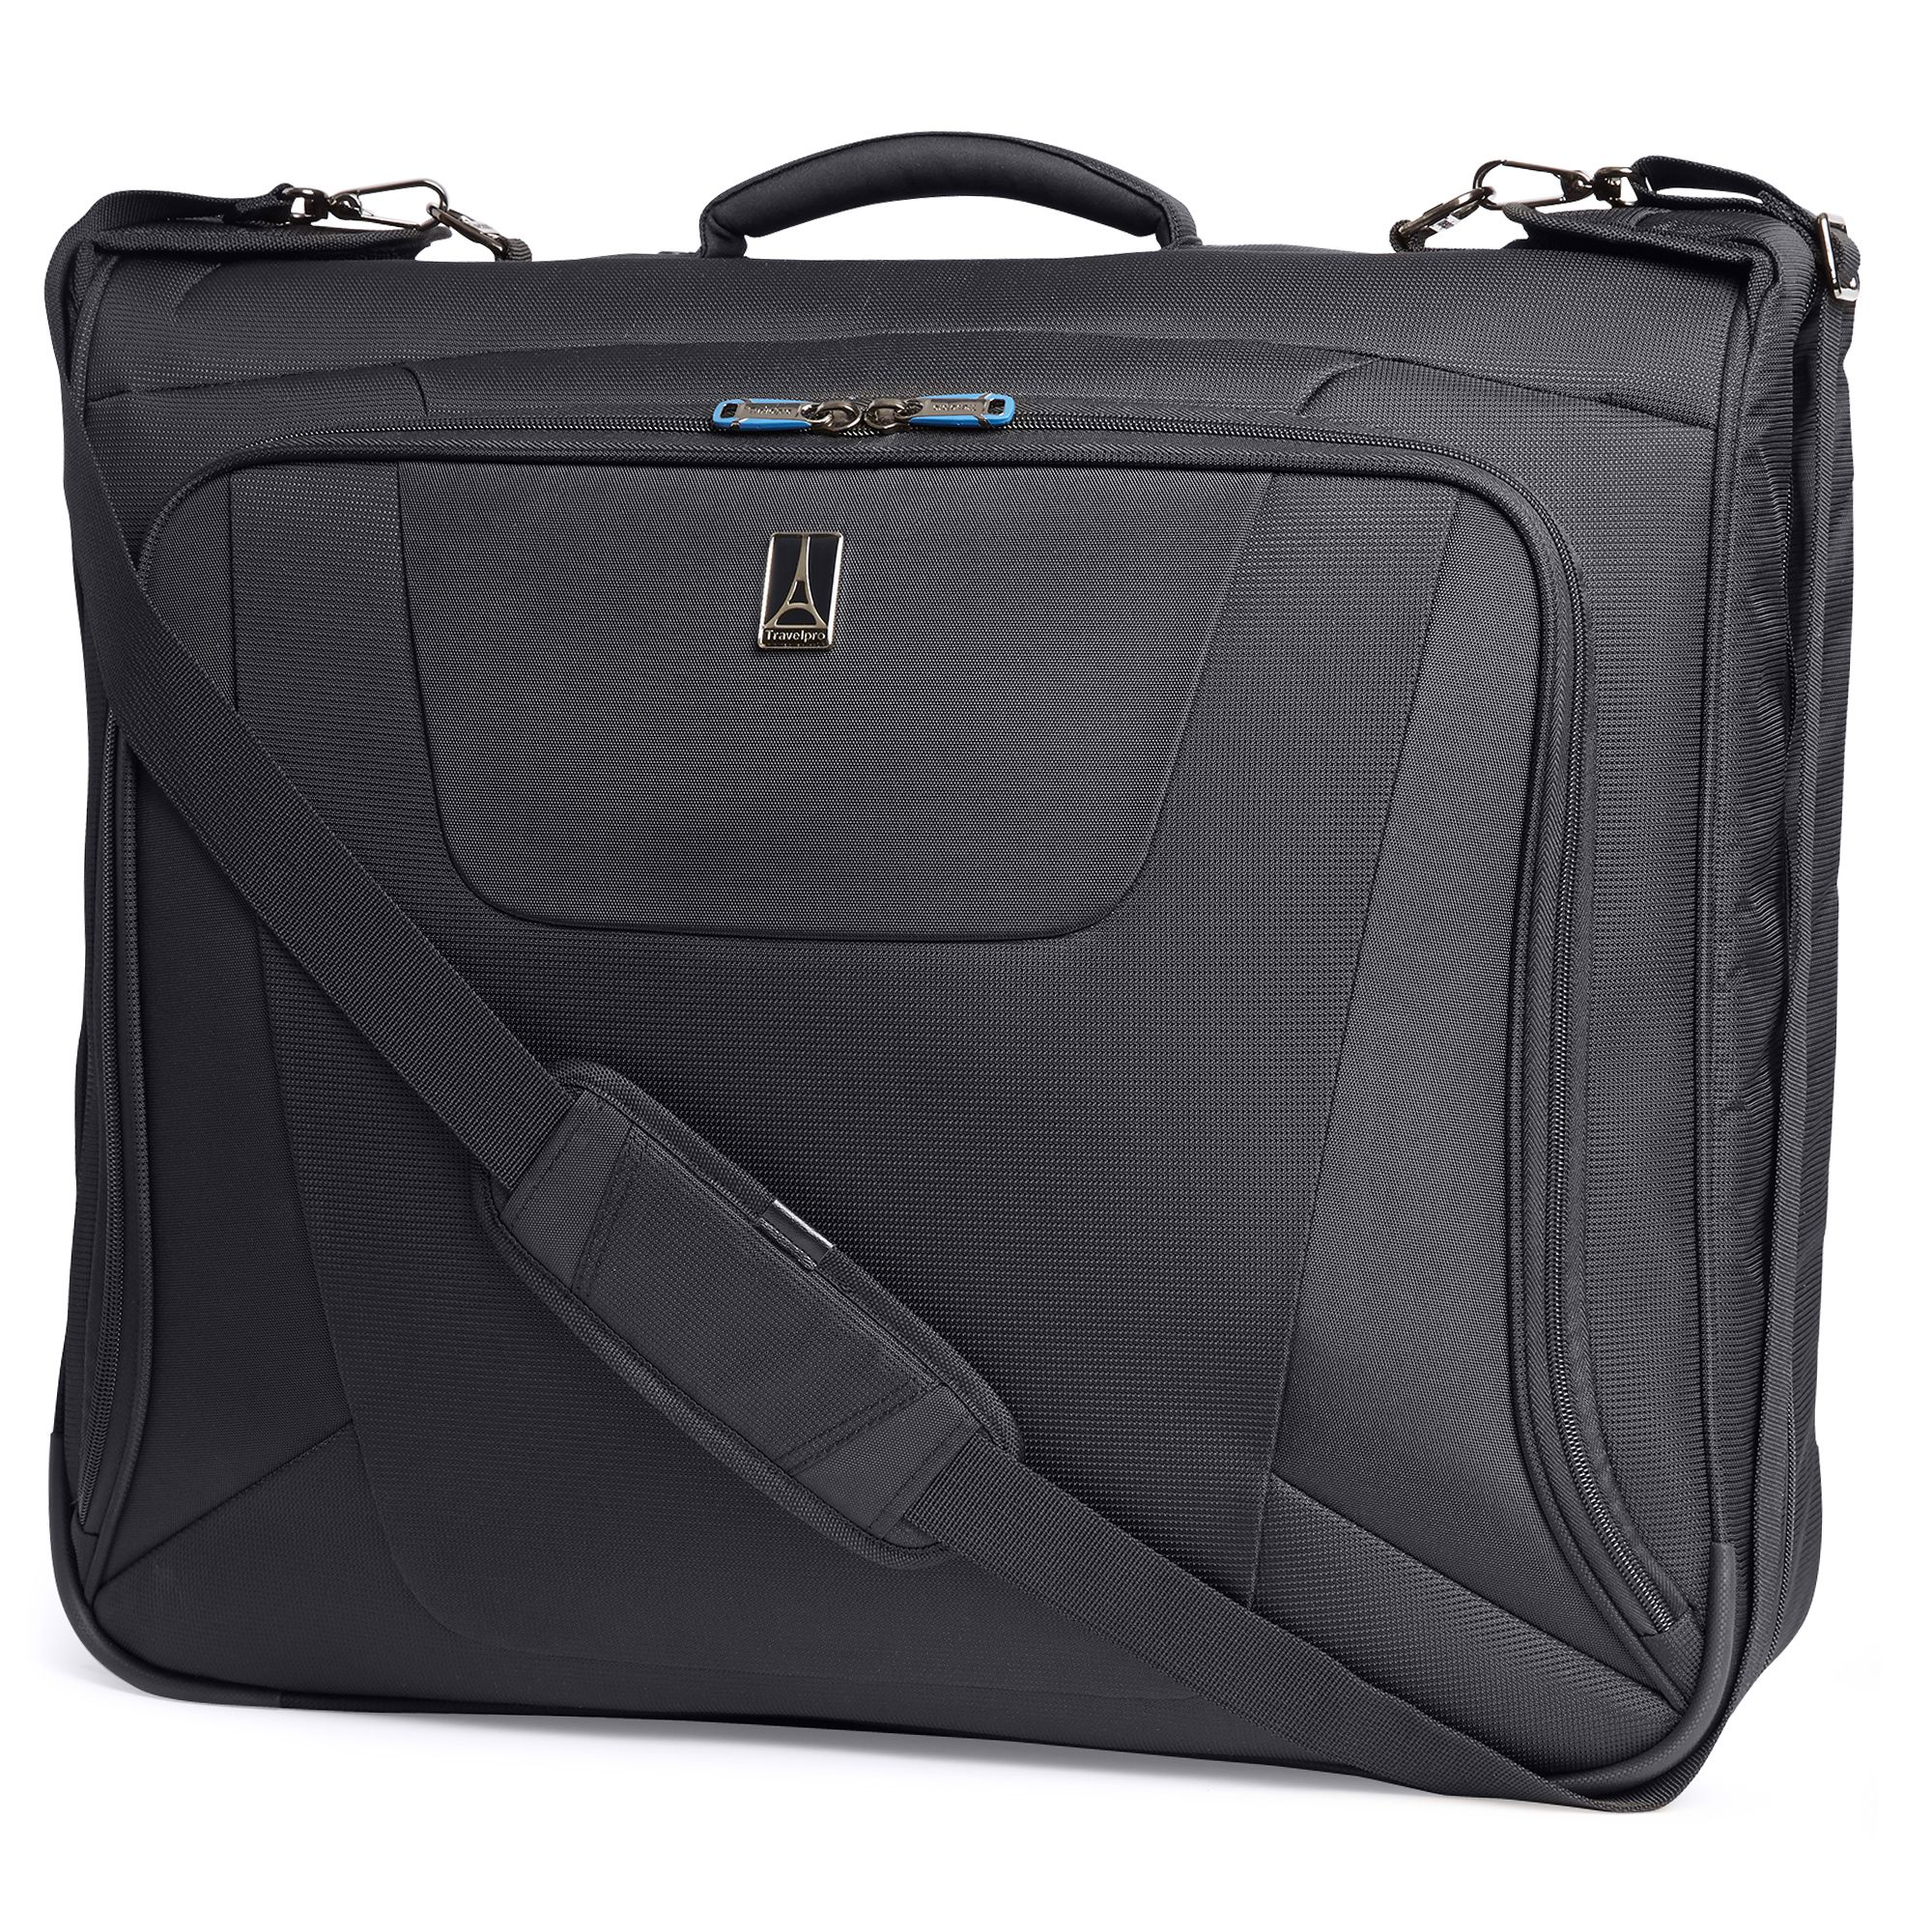 TravelPro® Maxlite® 3 Garment Bag in Black